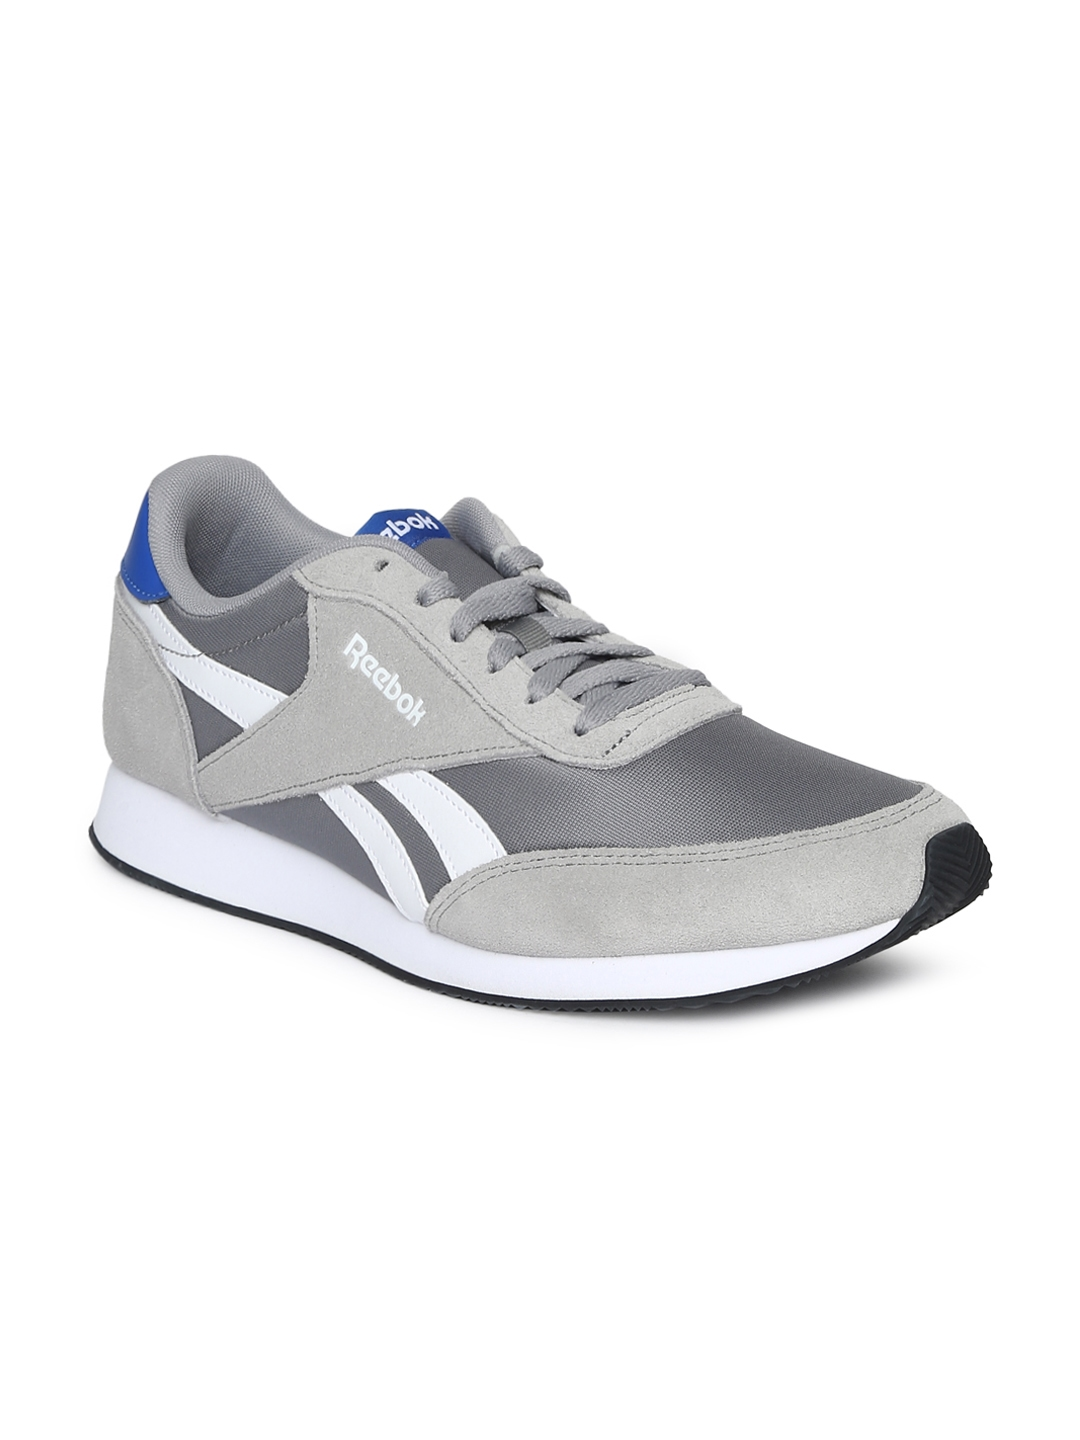 Buy REEBOK Classic Men Grey ROYAL CL JOGGER Running Shoes - Sports ... e95a9b194d7f